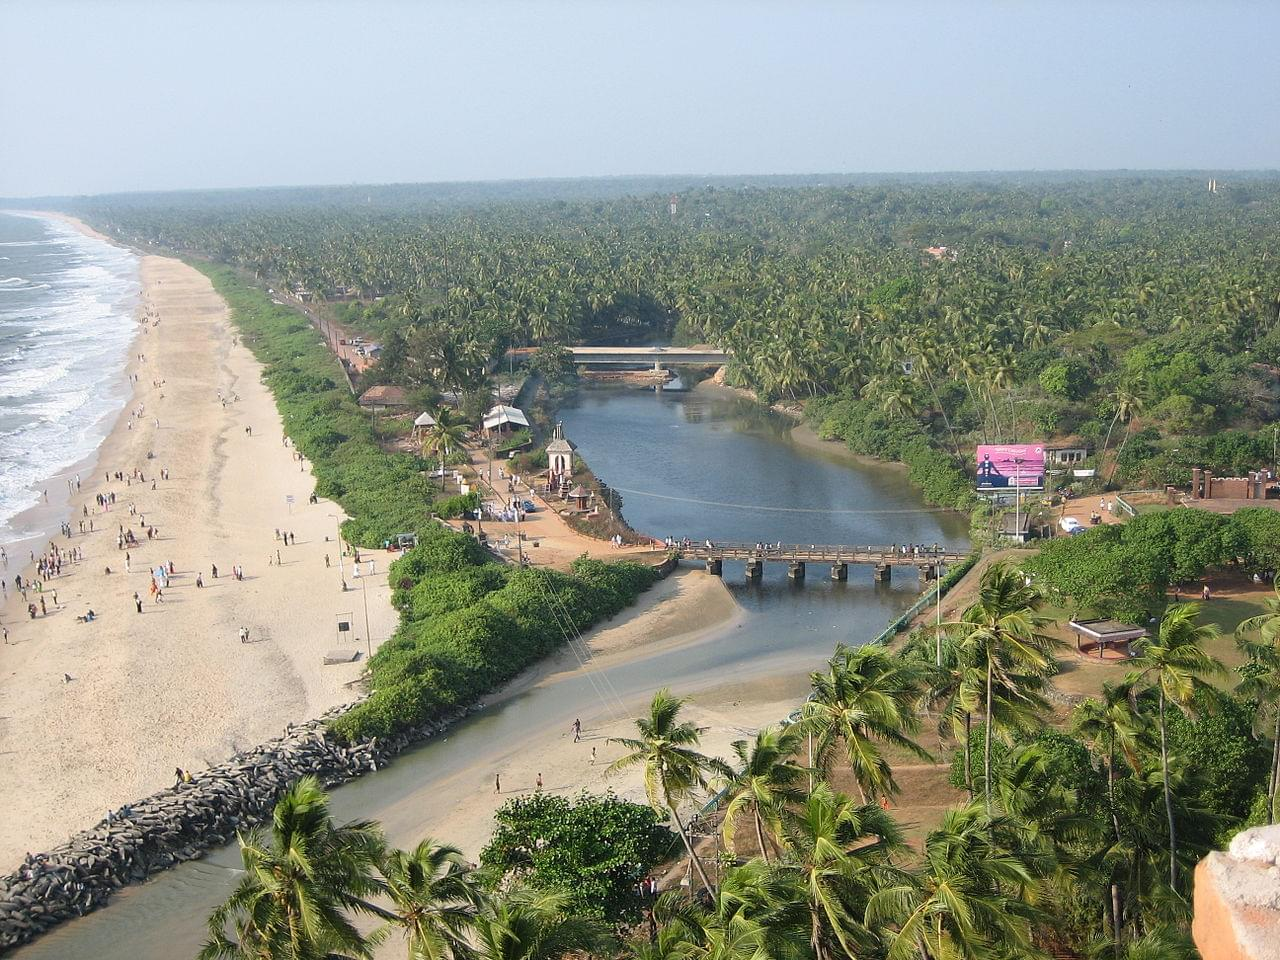 5-Night---6-Days-Kerala-Tour-Package-with-Kozikode-and-Thrissur-JustWravel-1597393446-1.jpg